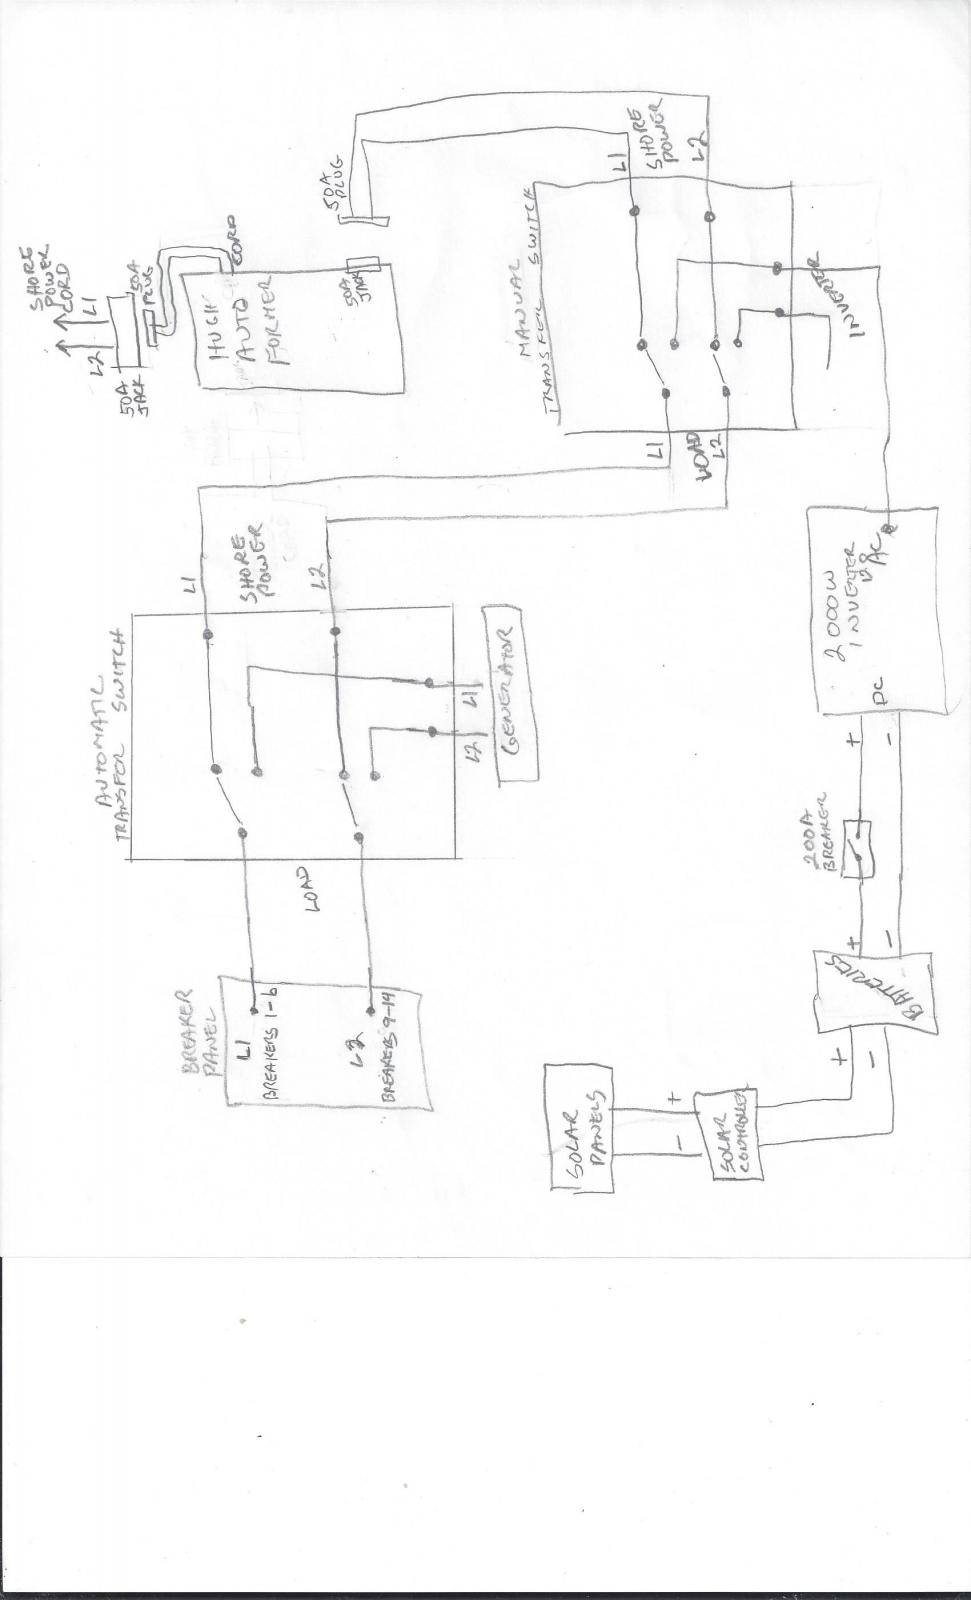 Awesome 2014 Keystone Montana Wiring Diagrams Keystone Hideout Wiring Wiring Cloud Rectuggs Outletorg